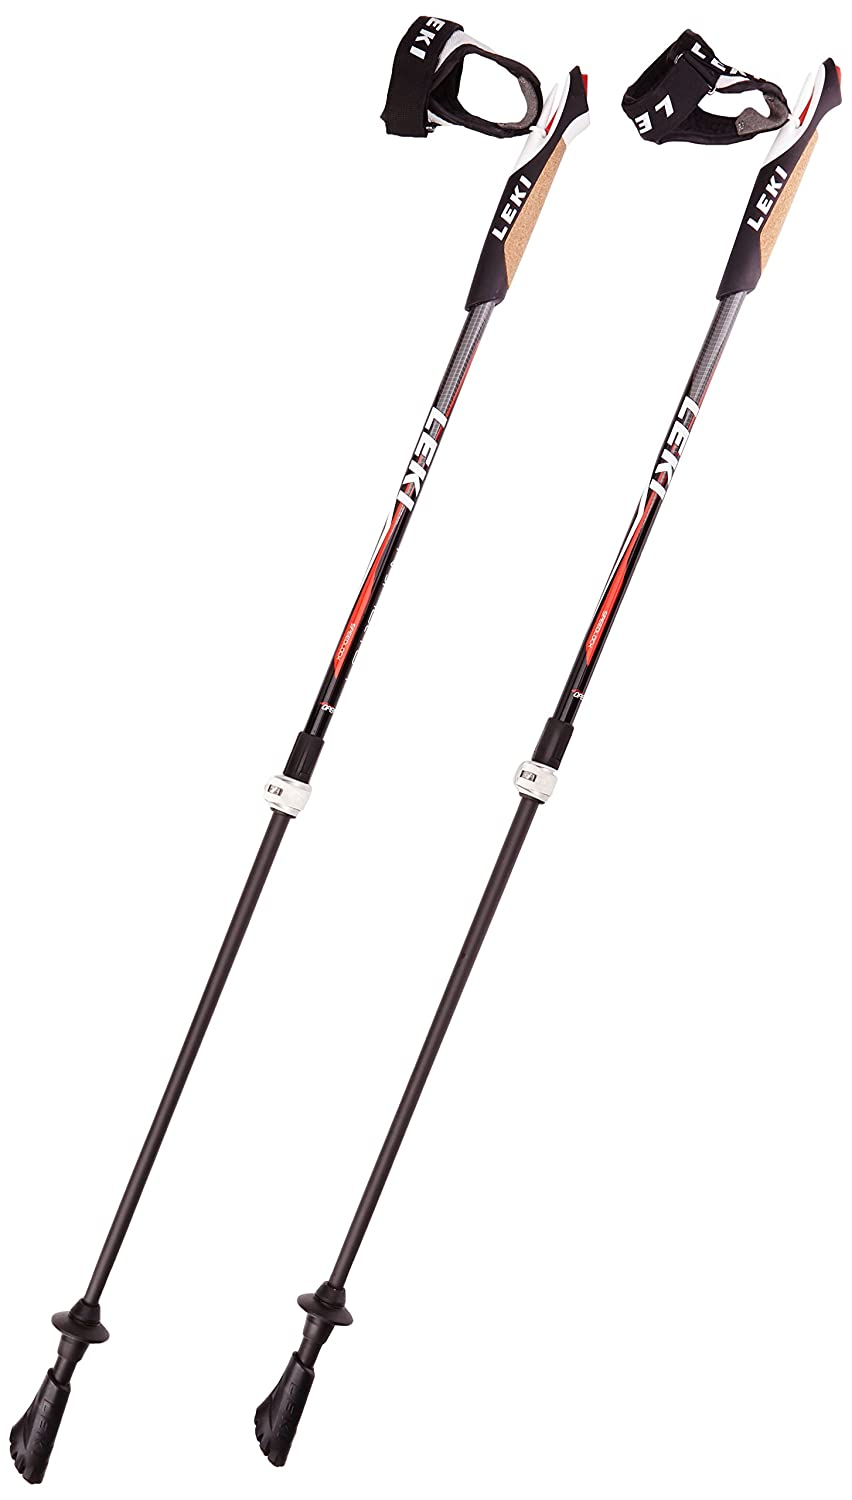 baa20c9b789 LEKI Instructor LITE Nordic Walking Pole (Pair)  Amazon.com.au  Sports